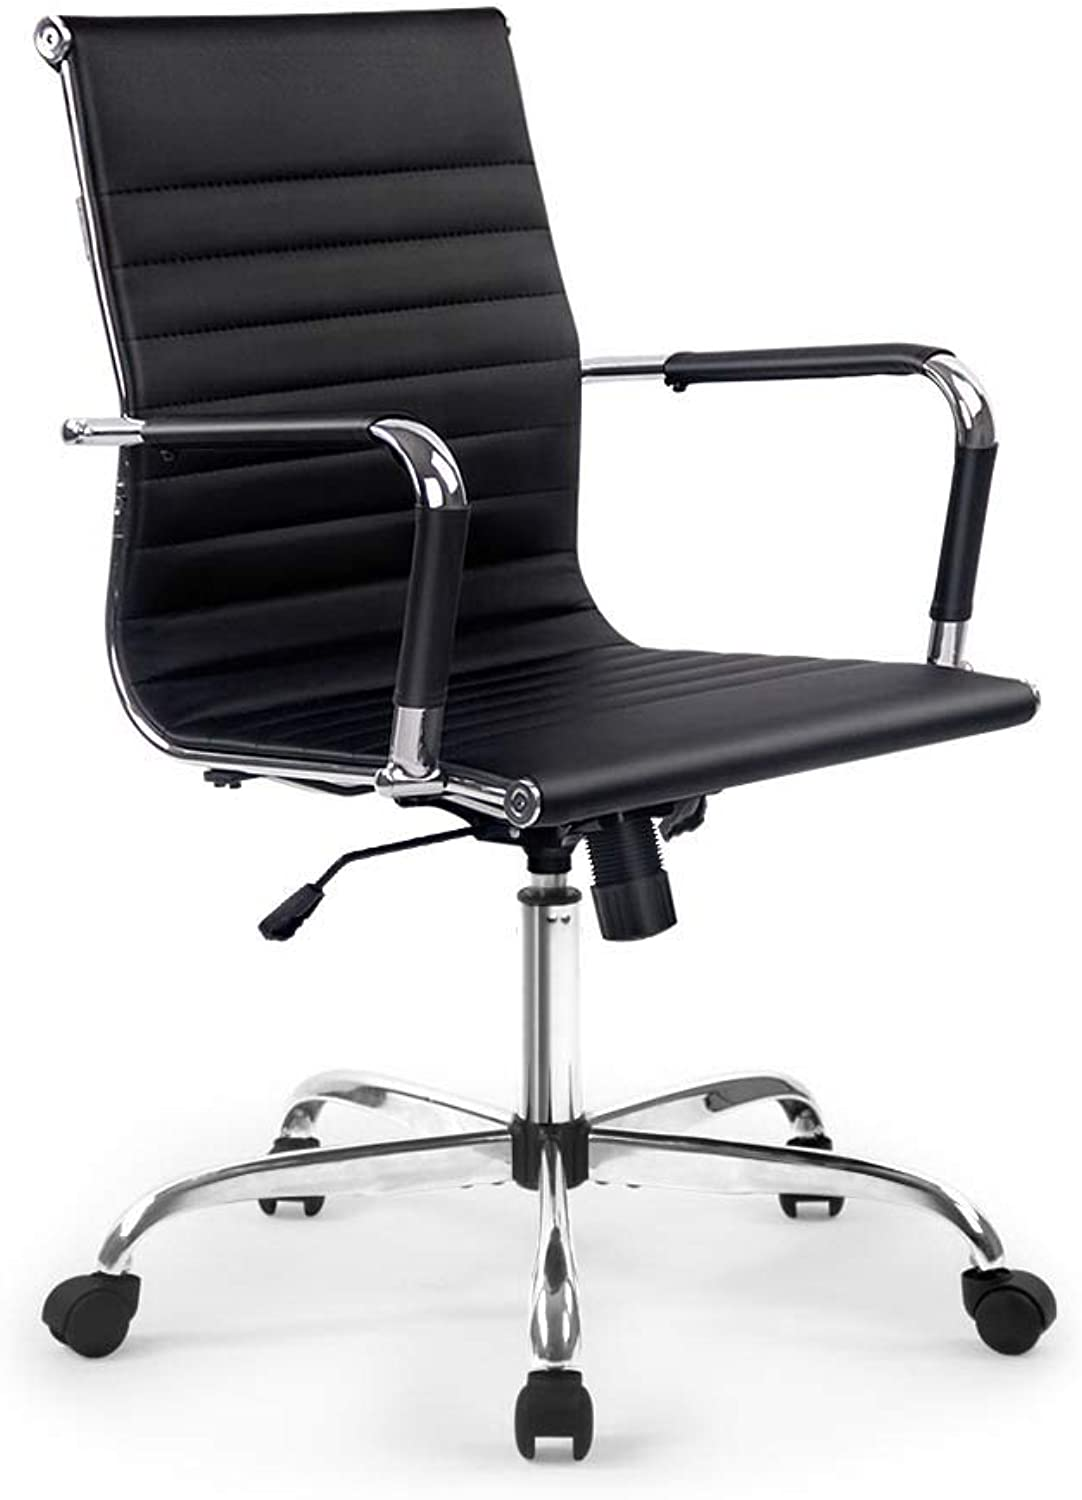 Eames Replica Office Chair with Premium PU Leather Executive Computer Adjustable Armchair Black